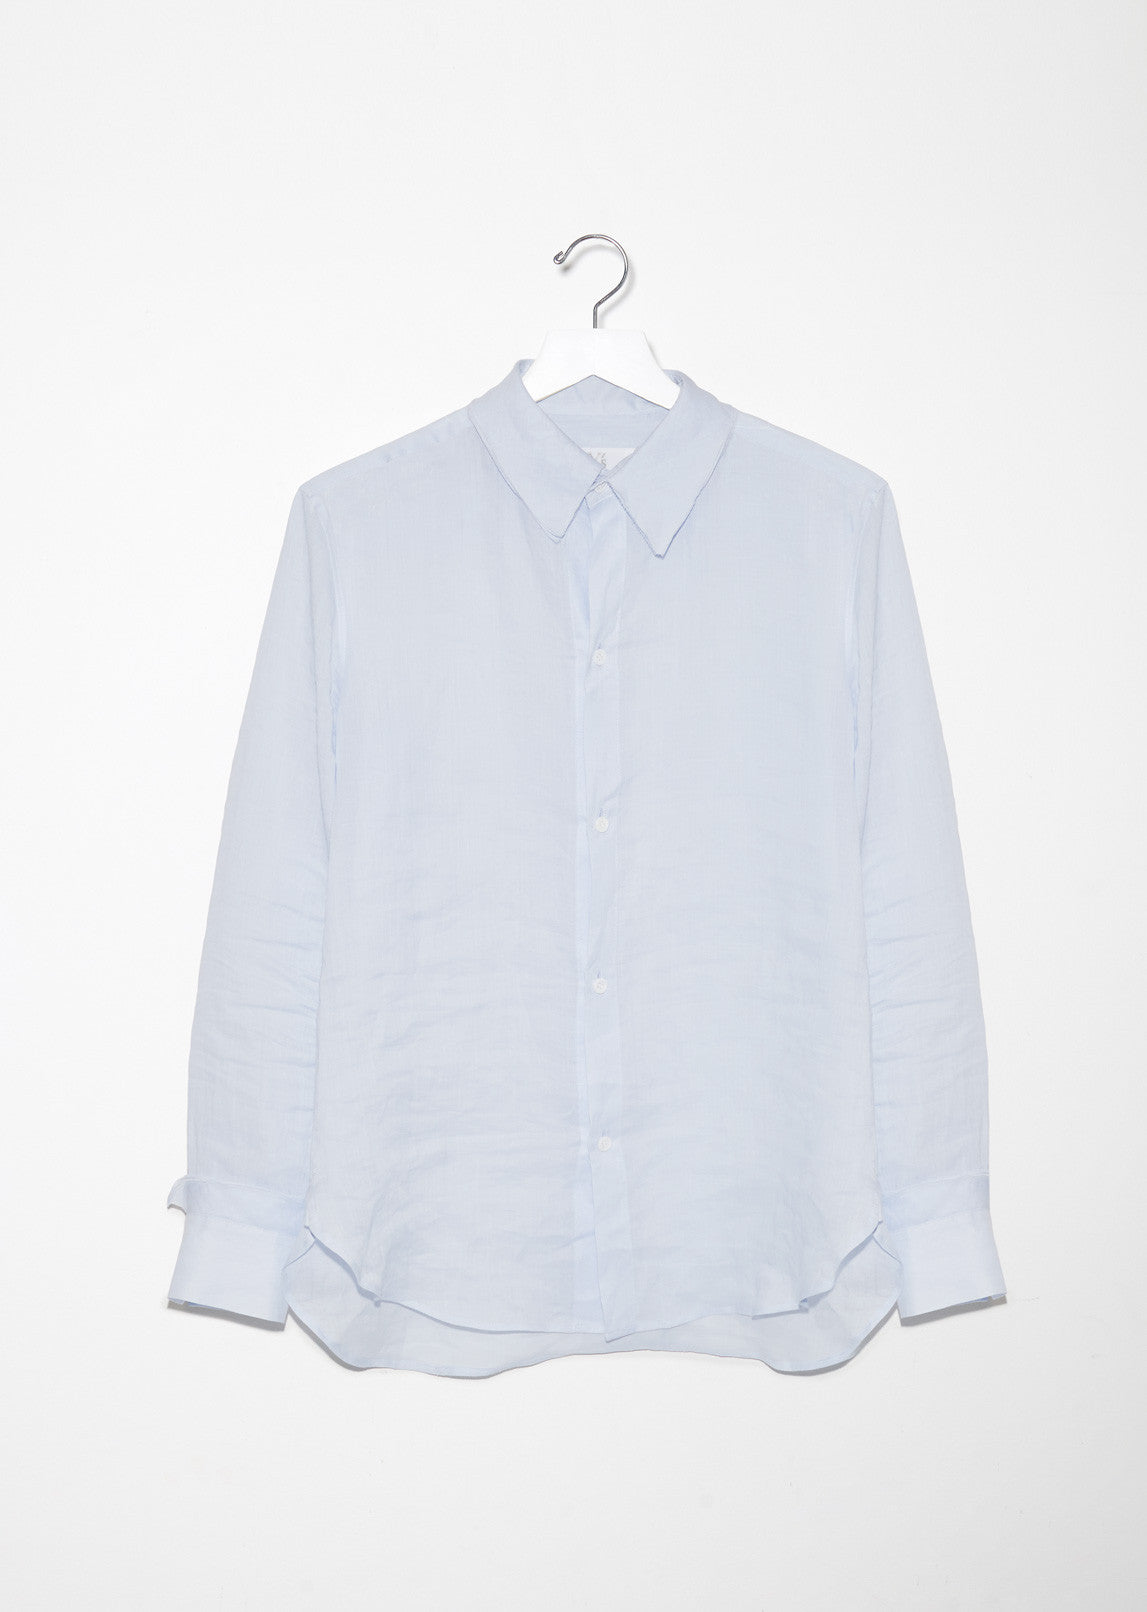 Layered Collar Shirt